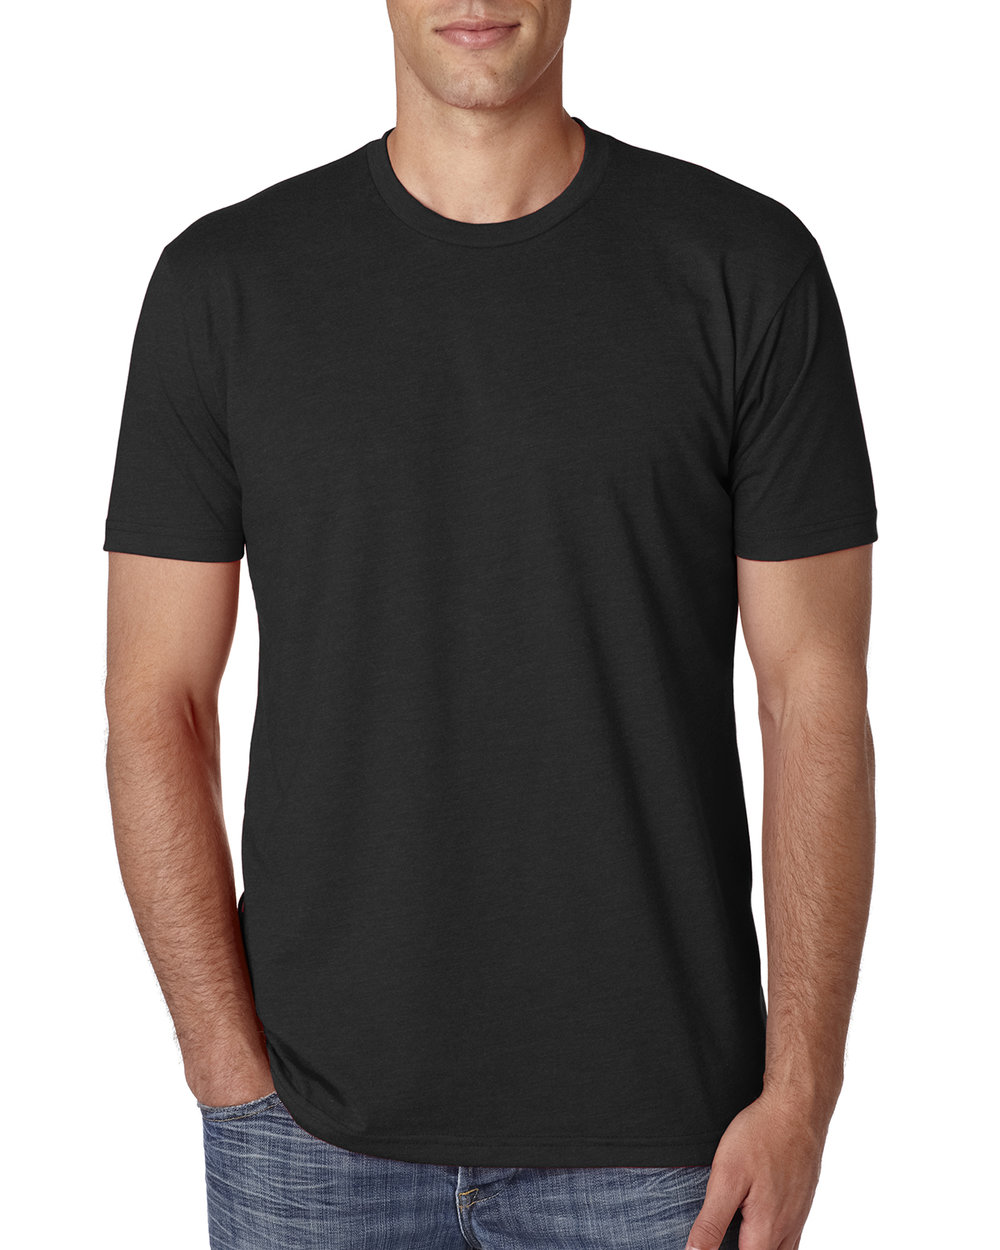 Next Level n6210 - The n6210 by Next Level is an affordable premium t-shirt with a modern fit, and extremely soft fabric blend. It's 60 % combed ringspun cotton & 40% polyester jersey, so shrinkage isn't as significant as with at 100% cotton shirt. The colors are slightly heathered, giving them a softer vintage look. They also feature tearaway labels in the neck, so removing them for tag printing is an option.  Try putting your design on one, check out all of the colors available, or get an easy online quote here.